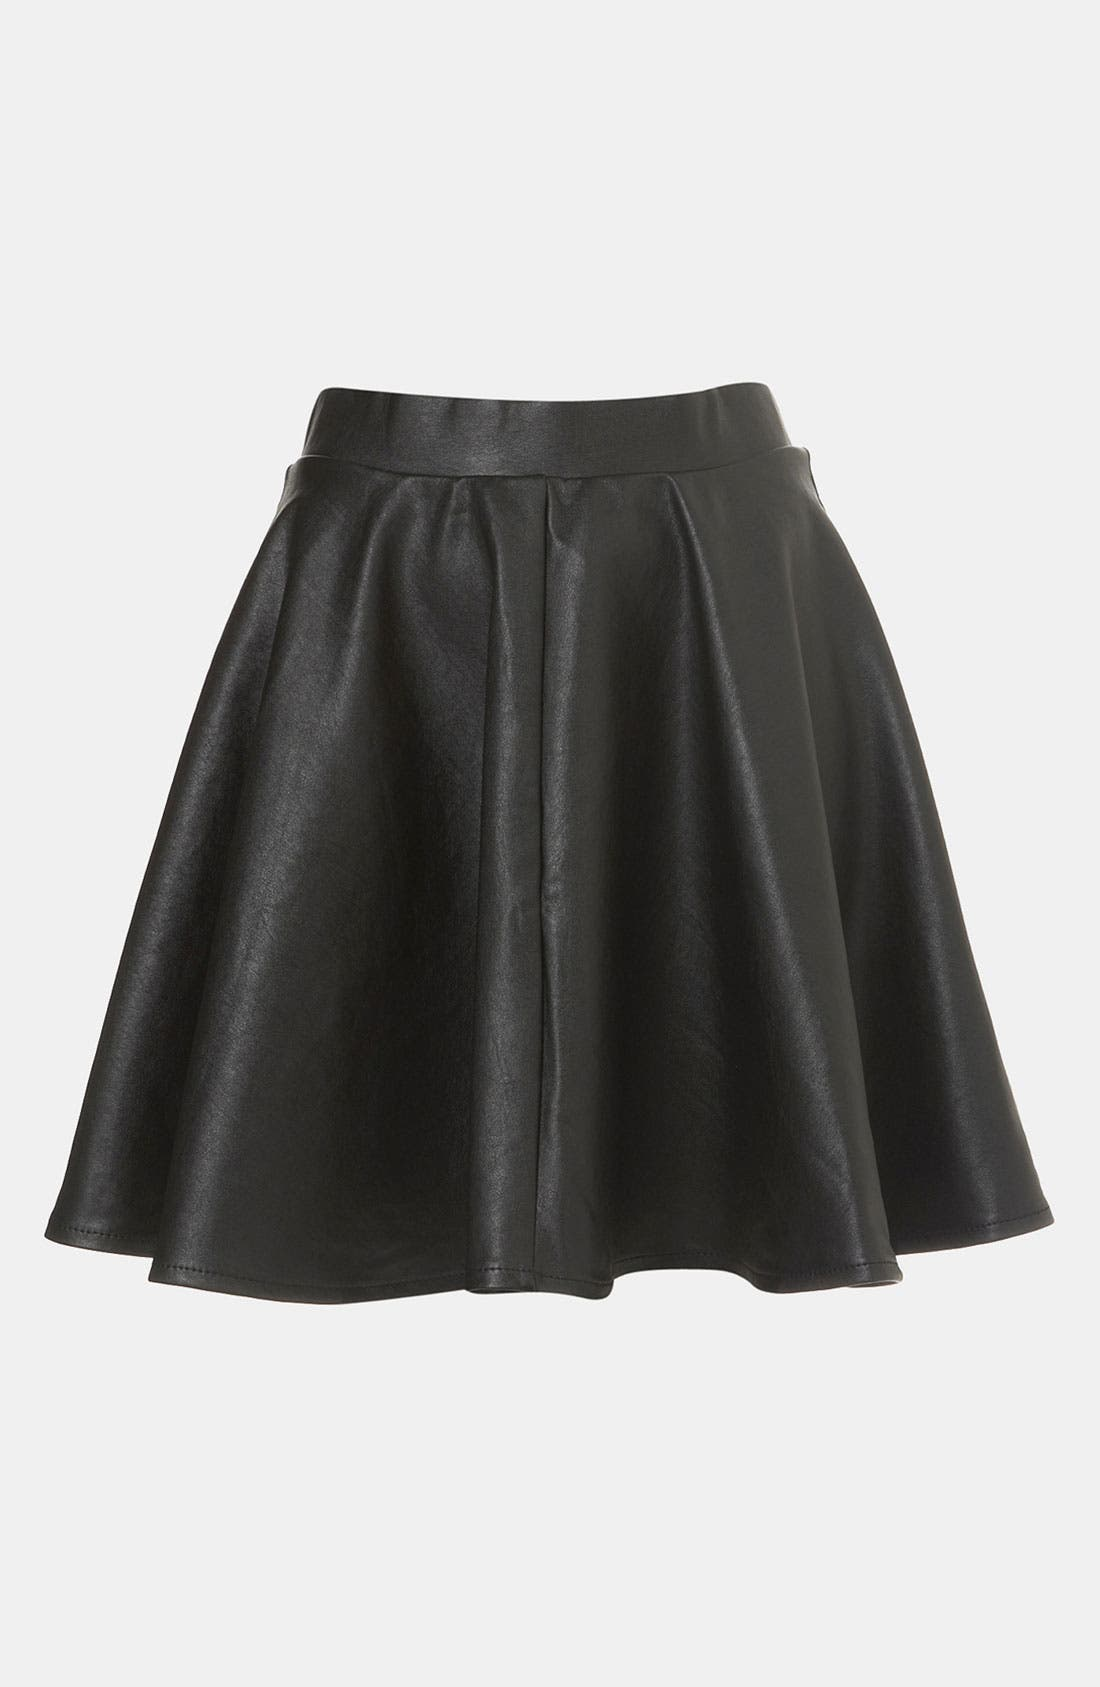 Alternate Image 1 Selected - Topshop 'Andie' Faux Leather Skater Skirt